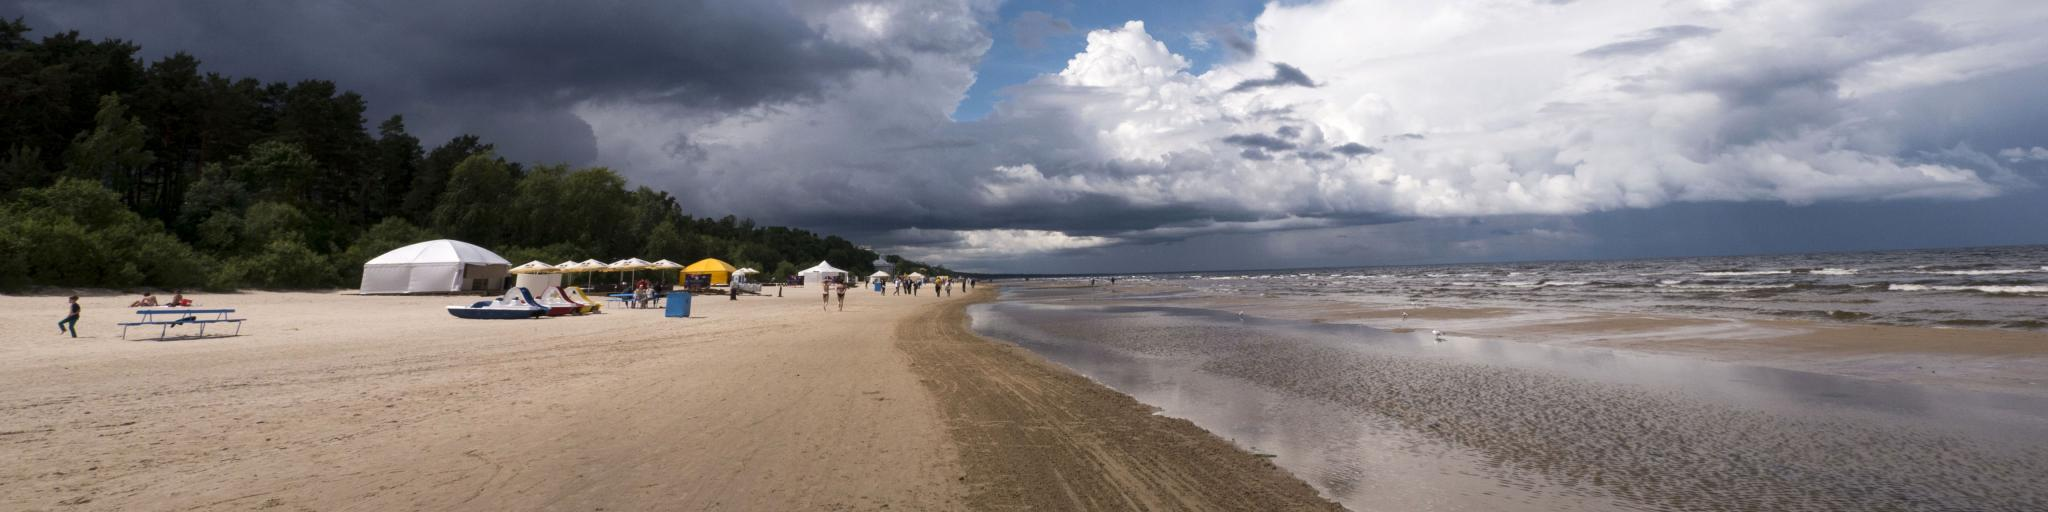 A beach scene in Jurmala, Latvia